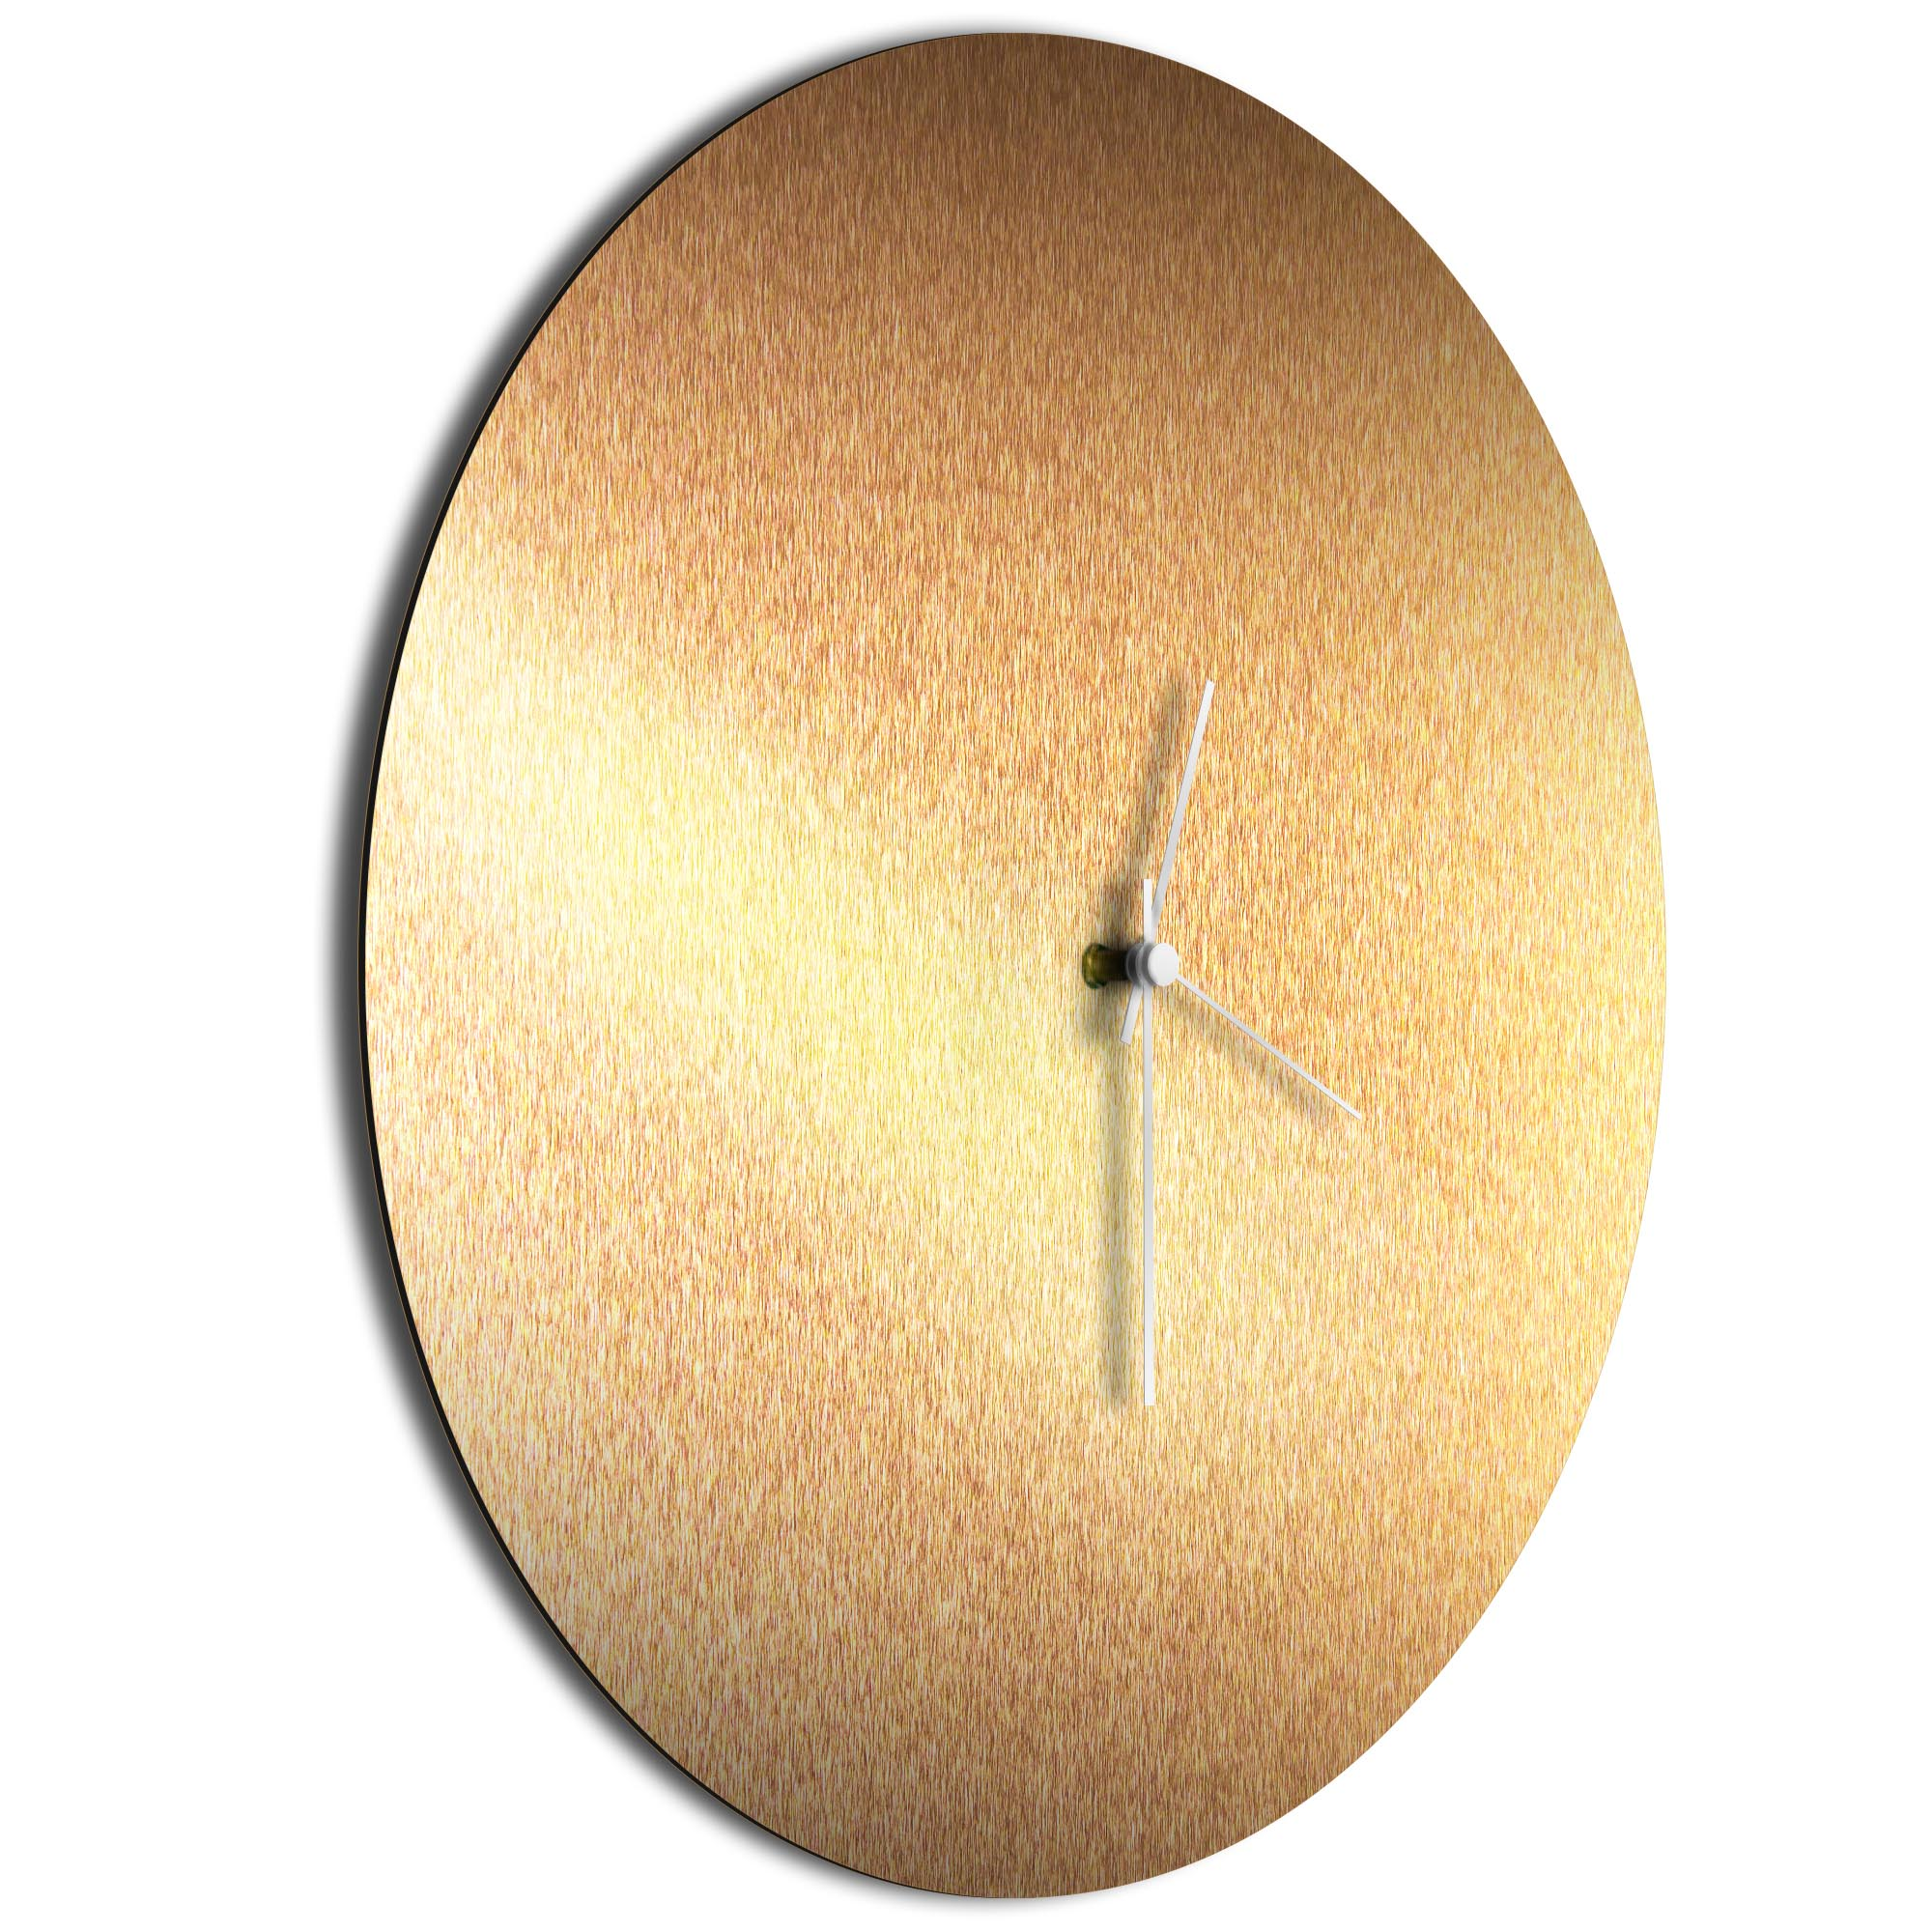 Bronzesmith Circle Clock White - Image 2